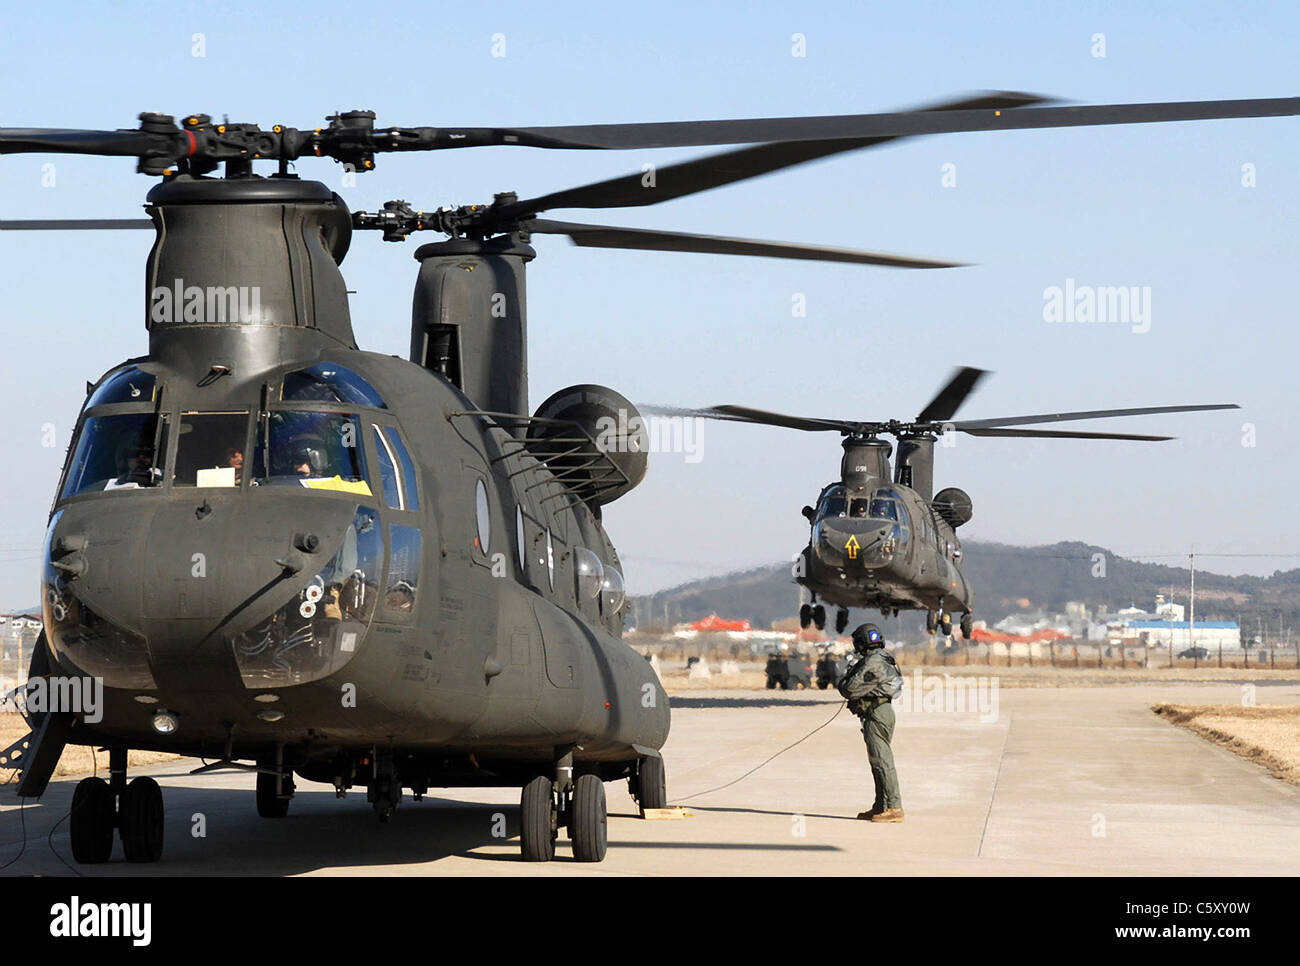 Chinook Helicopters on mil mi-24, c-130 hercules, huey helicopter, jolly green giant helicopter, mh-53 pave low, cobra helicopter, attack helicopter, osprey helicopter, c-5 galaxy, sea knight helicopter, seahawk helicopter, pave low helicopter, sikorsky s-92, kiowa helicopter, ah-1 cobra, ch-53e super stallion, cargo helicopter, sea stallion helicopter, black hawk helicopter, marine helicopter, mil mi-26, sikorsky uh-60 black hawk, f-15 eagle, apache helicopter, ah-64 apache, mi-17 helicopter, military helicopter, f-16 fighting falcon, comanche helicopter, ch-46 sea knight, lockheed ac-130, ch-53 sea stallion, skycrane helicopter, little bird helicopter, eurocopter tiger, oh-58 kiowa, heavy lift helicopter, v-22 osprey,